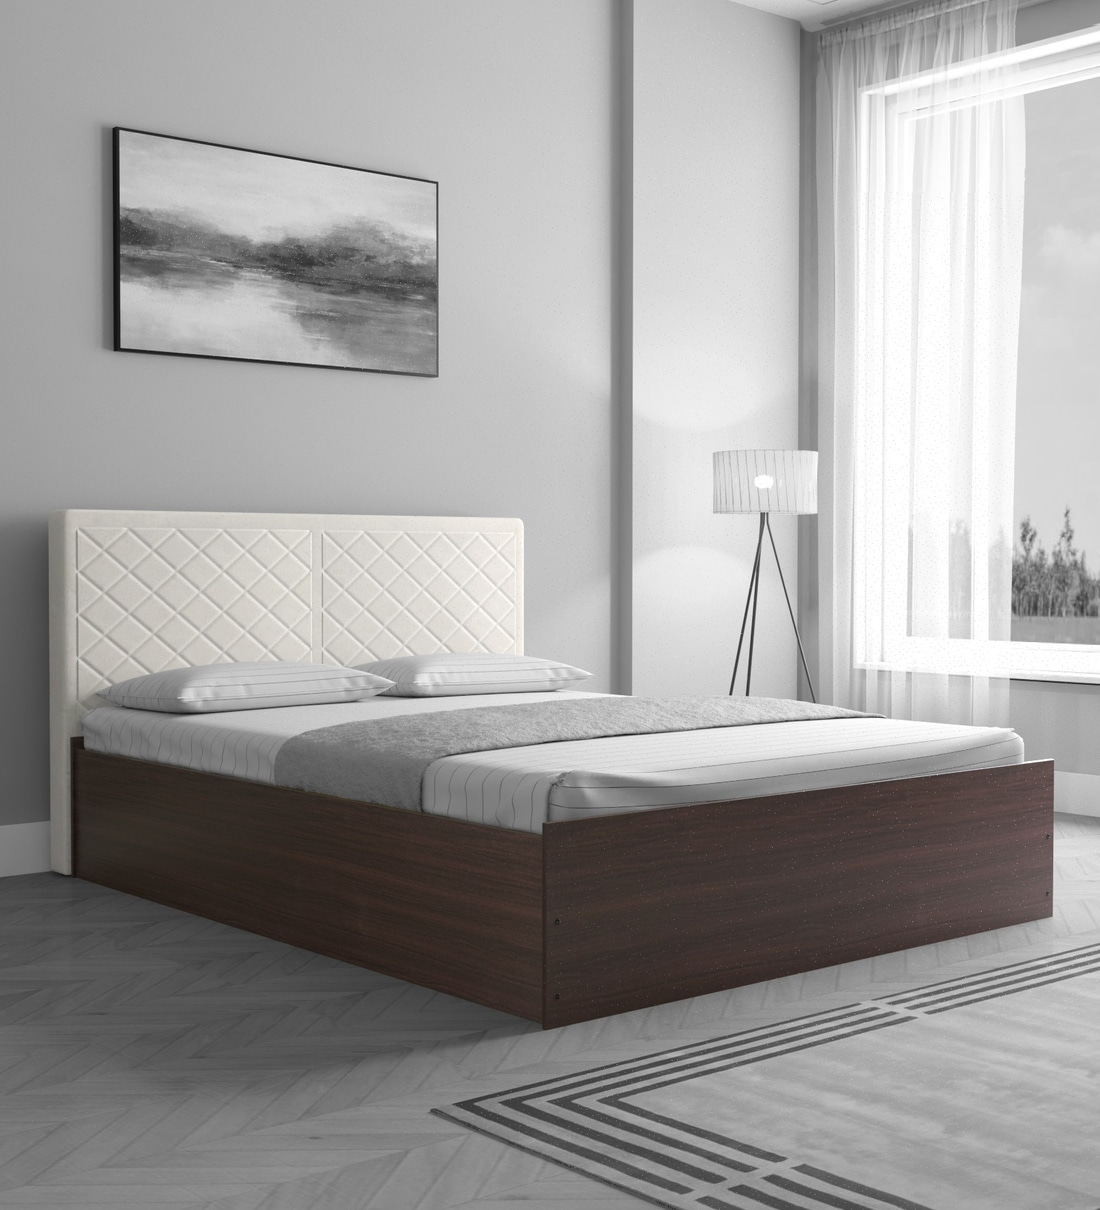 Buy Qunitino Queen Size Bed With Upholstered Headboard In Walnut Finish Casacraft By Pepperfry Online Modern Queen Size Beds Beds Furniture Pepperfry Product